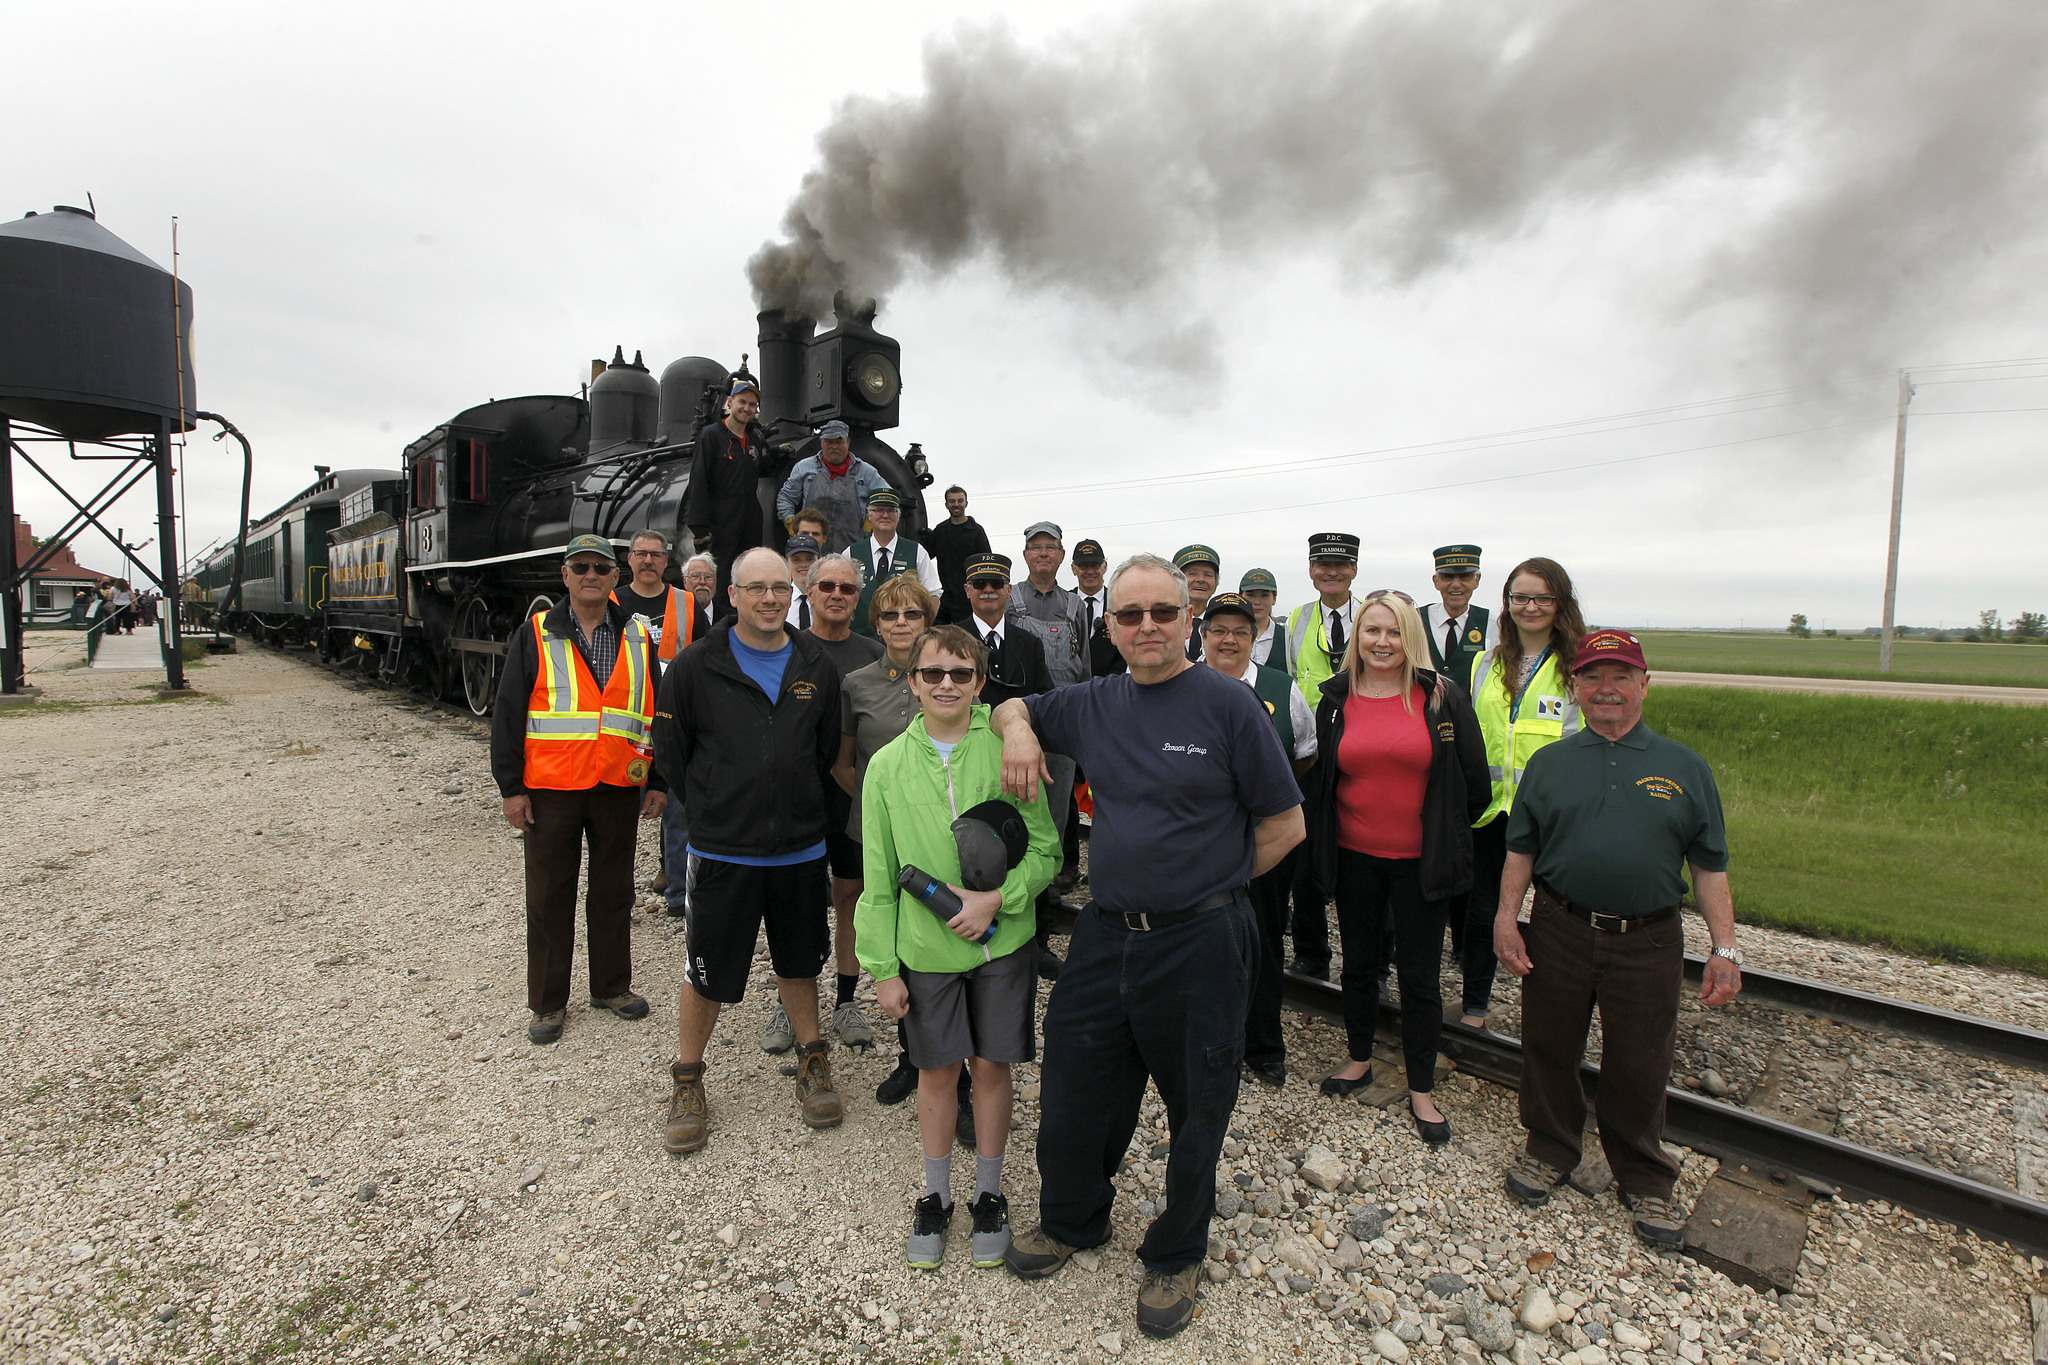 PHIL HOSSACK / WINNIPEG FREE PRESS</p><p>Prairie Dog Central volunteers and society members pose in front of engine No. 3.</p></p>